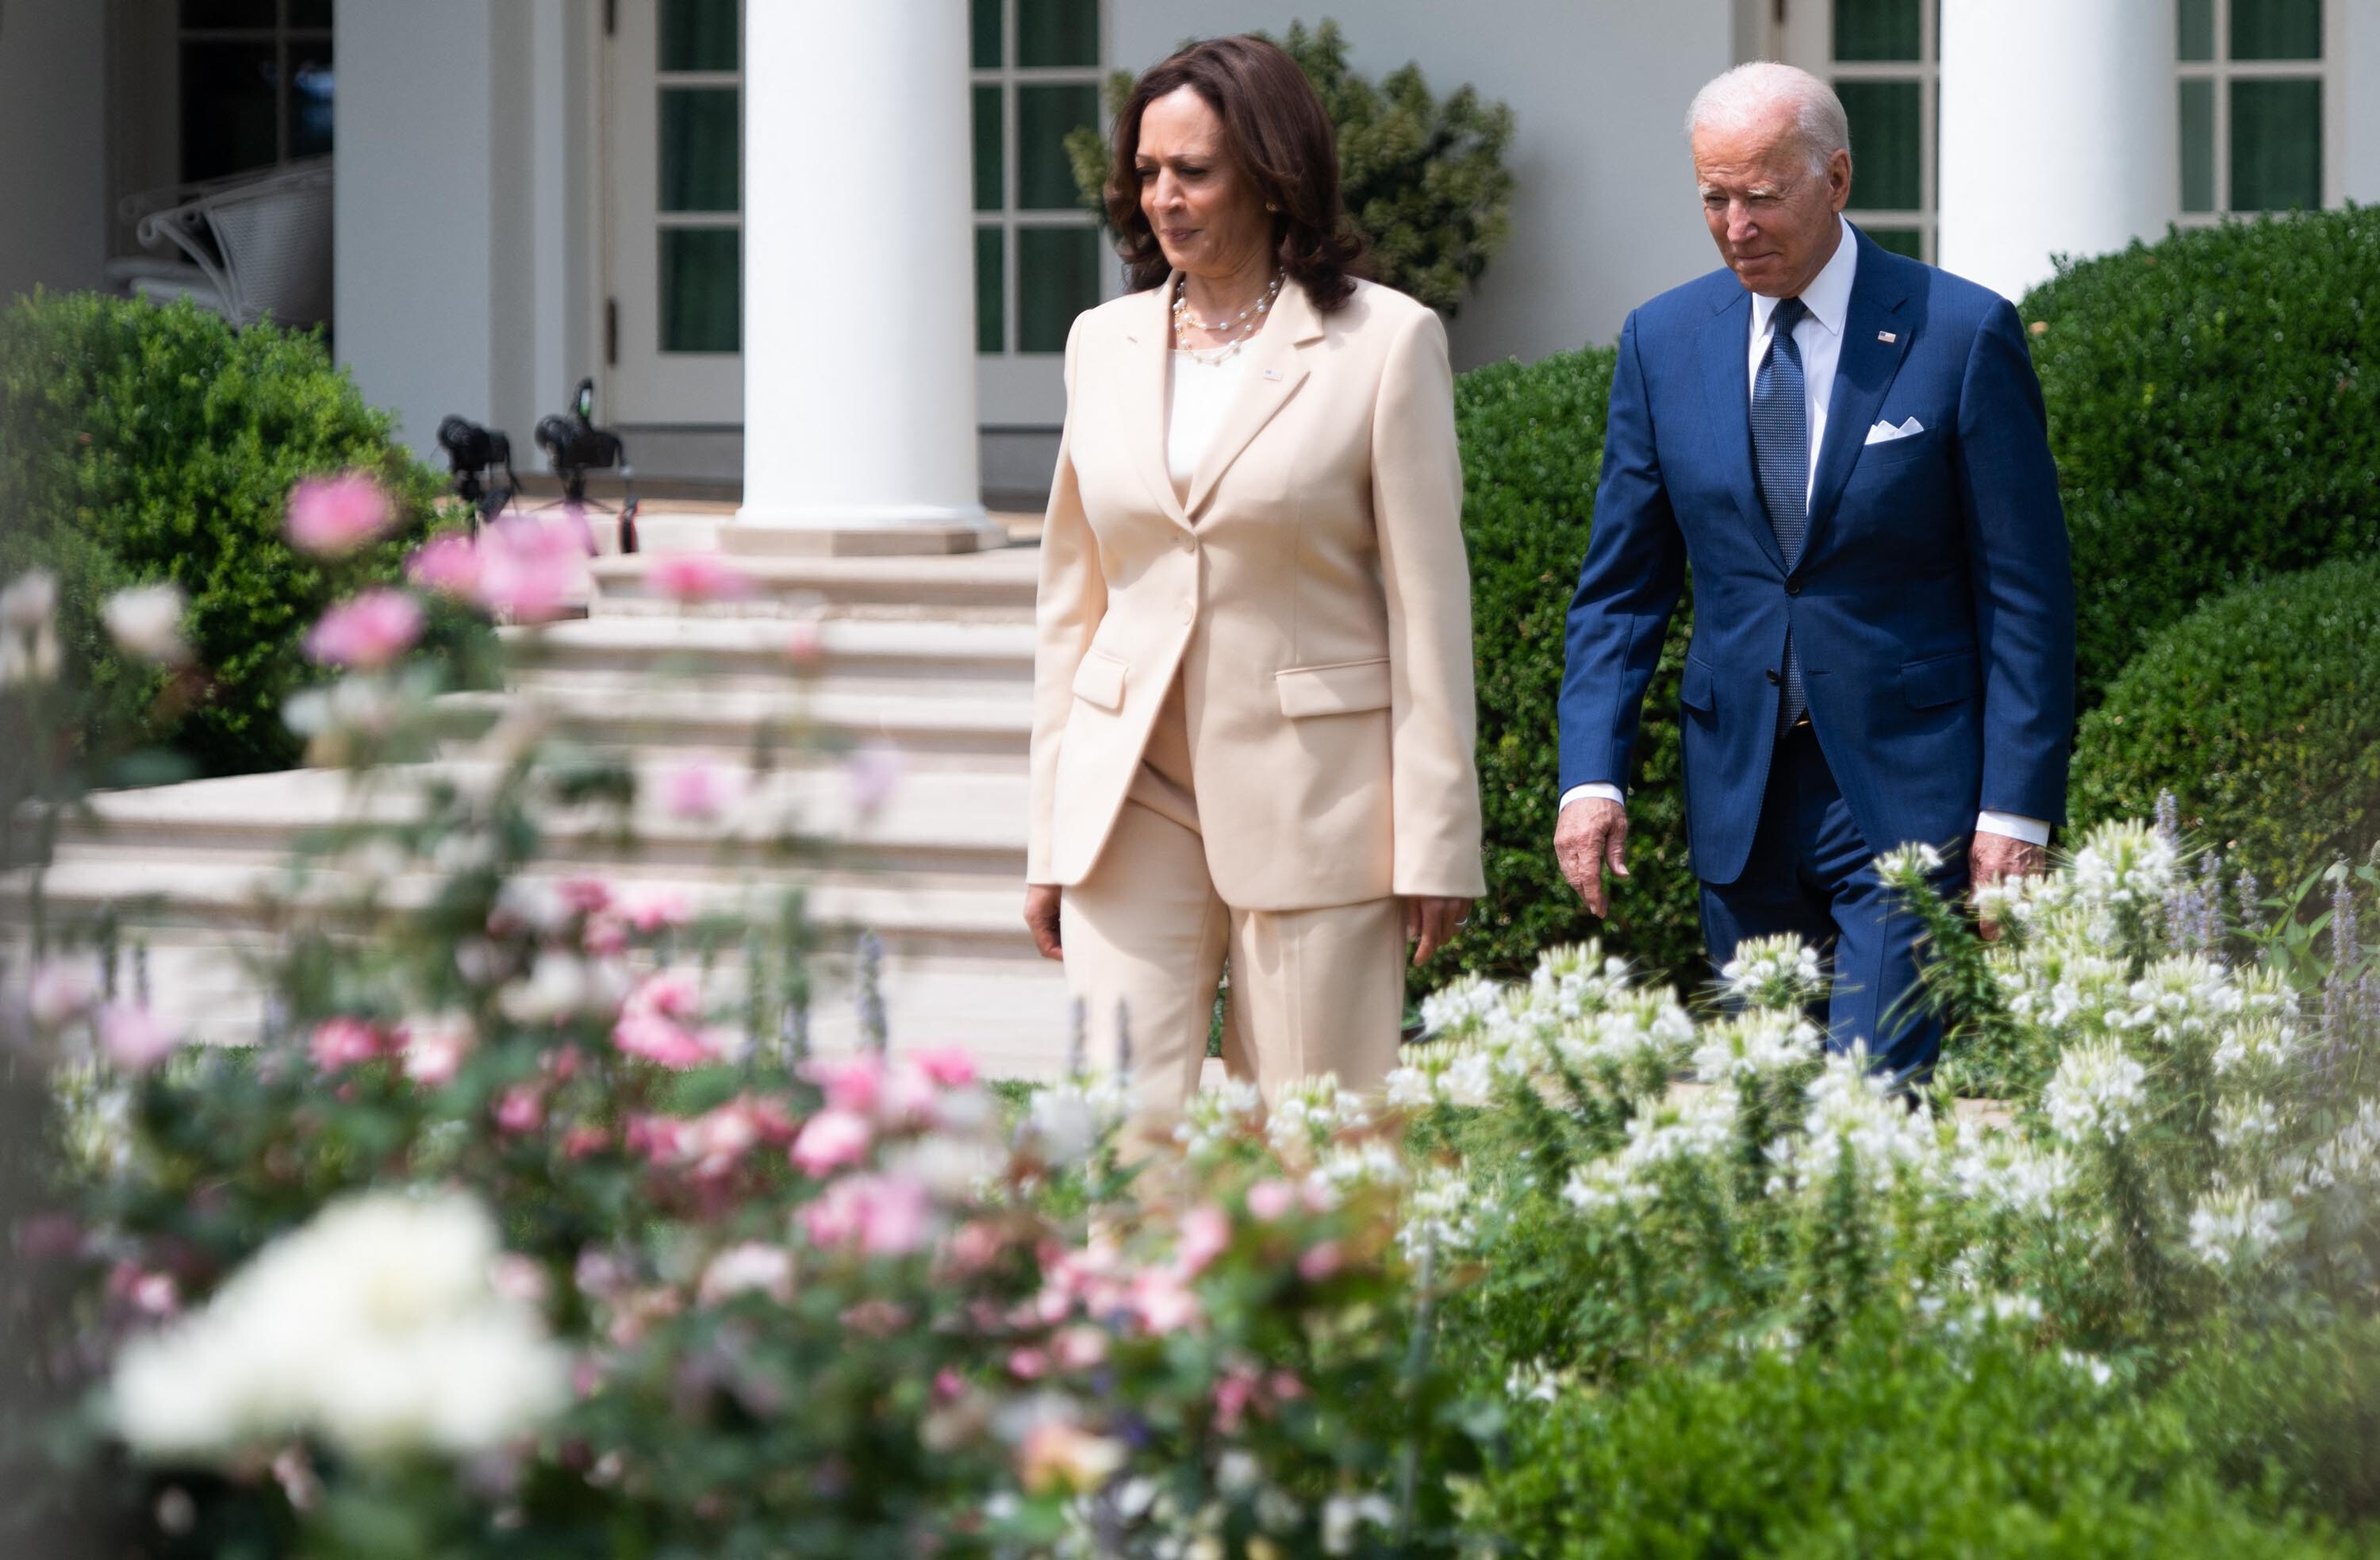 Biden and Harris hit the phones to bolster support on voting bill as Democrats face another GOP roadblock